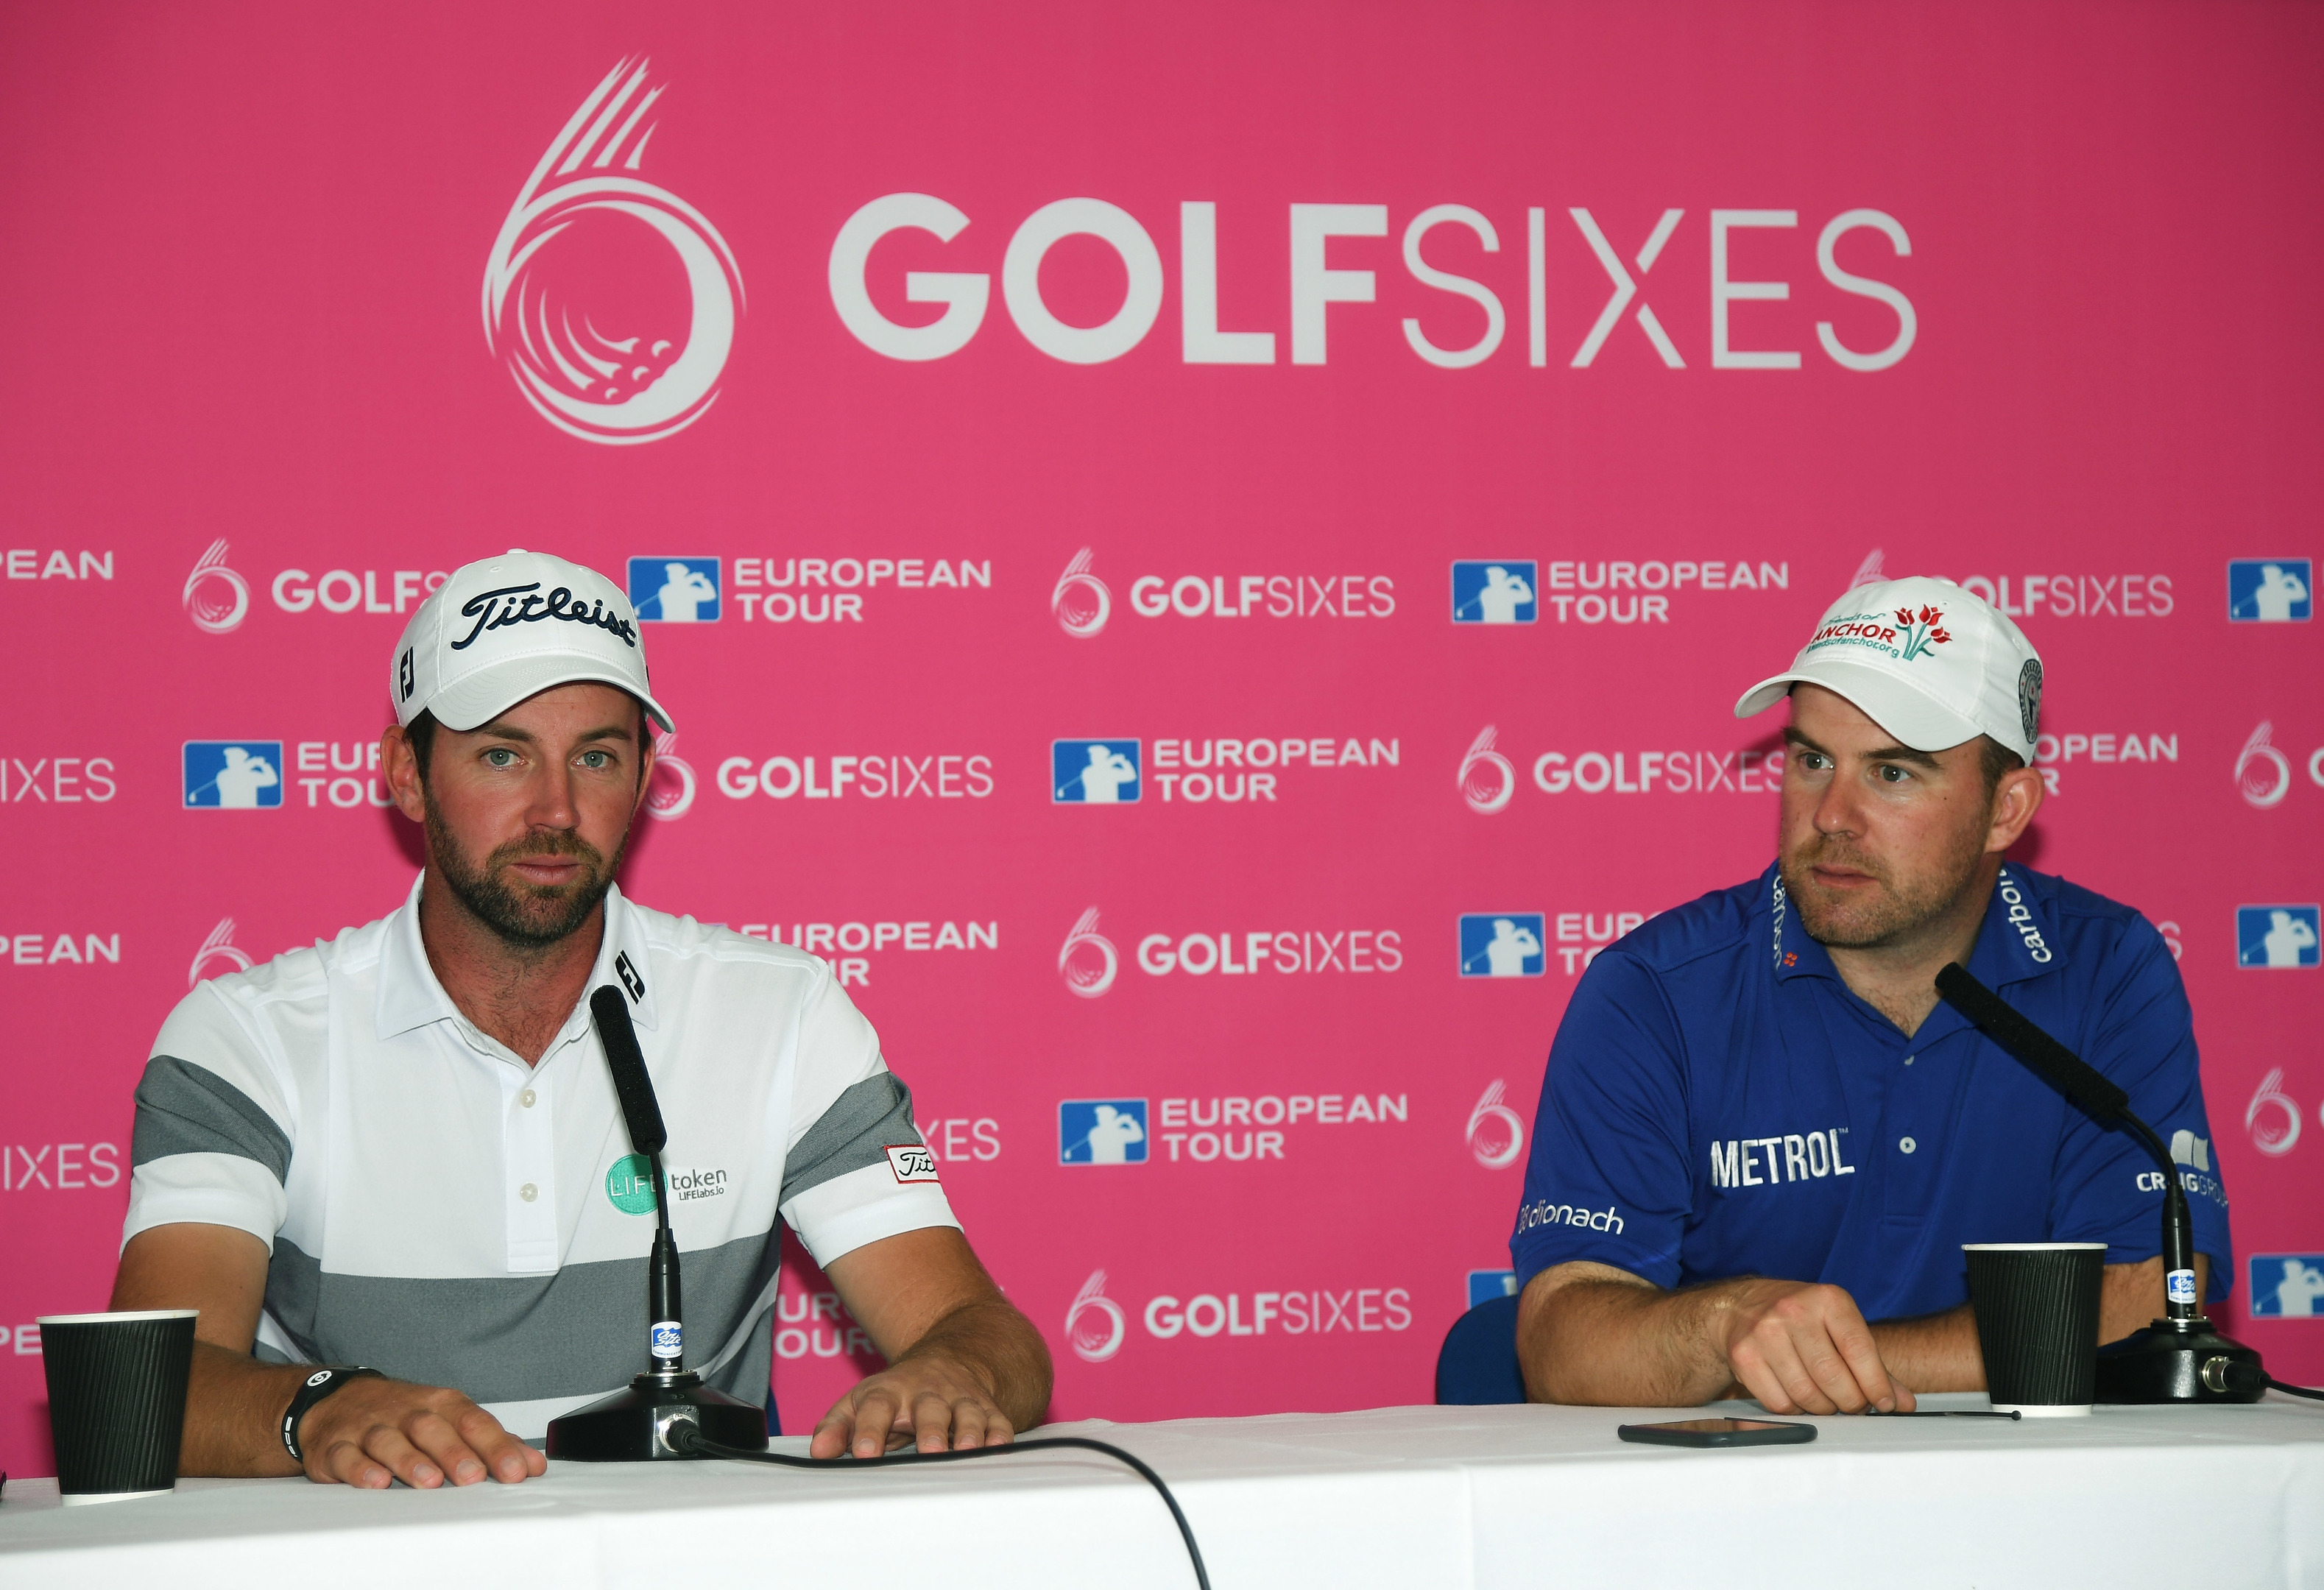 Scott Jamieson and Richie Ramsay are representing Scotland in this weekend's Golf Sixes.